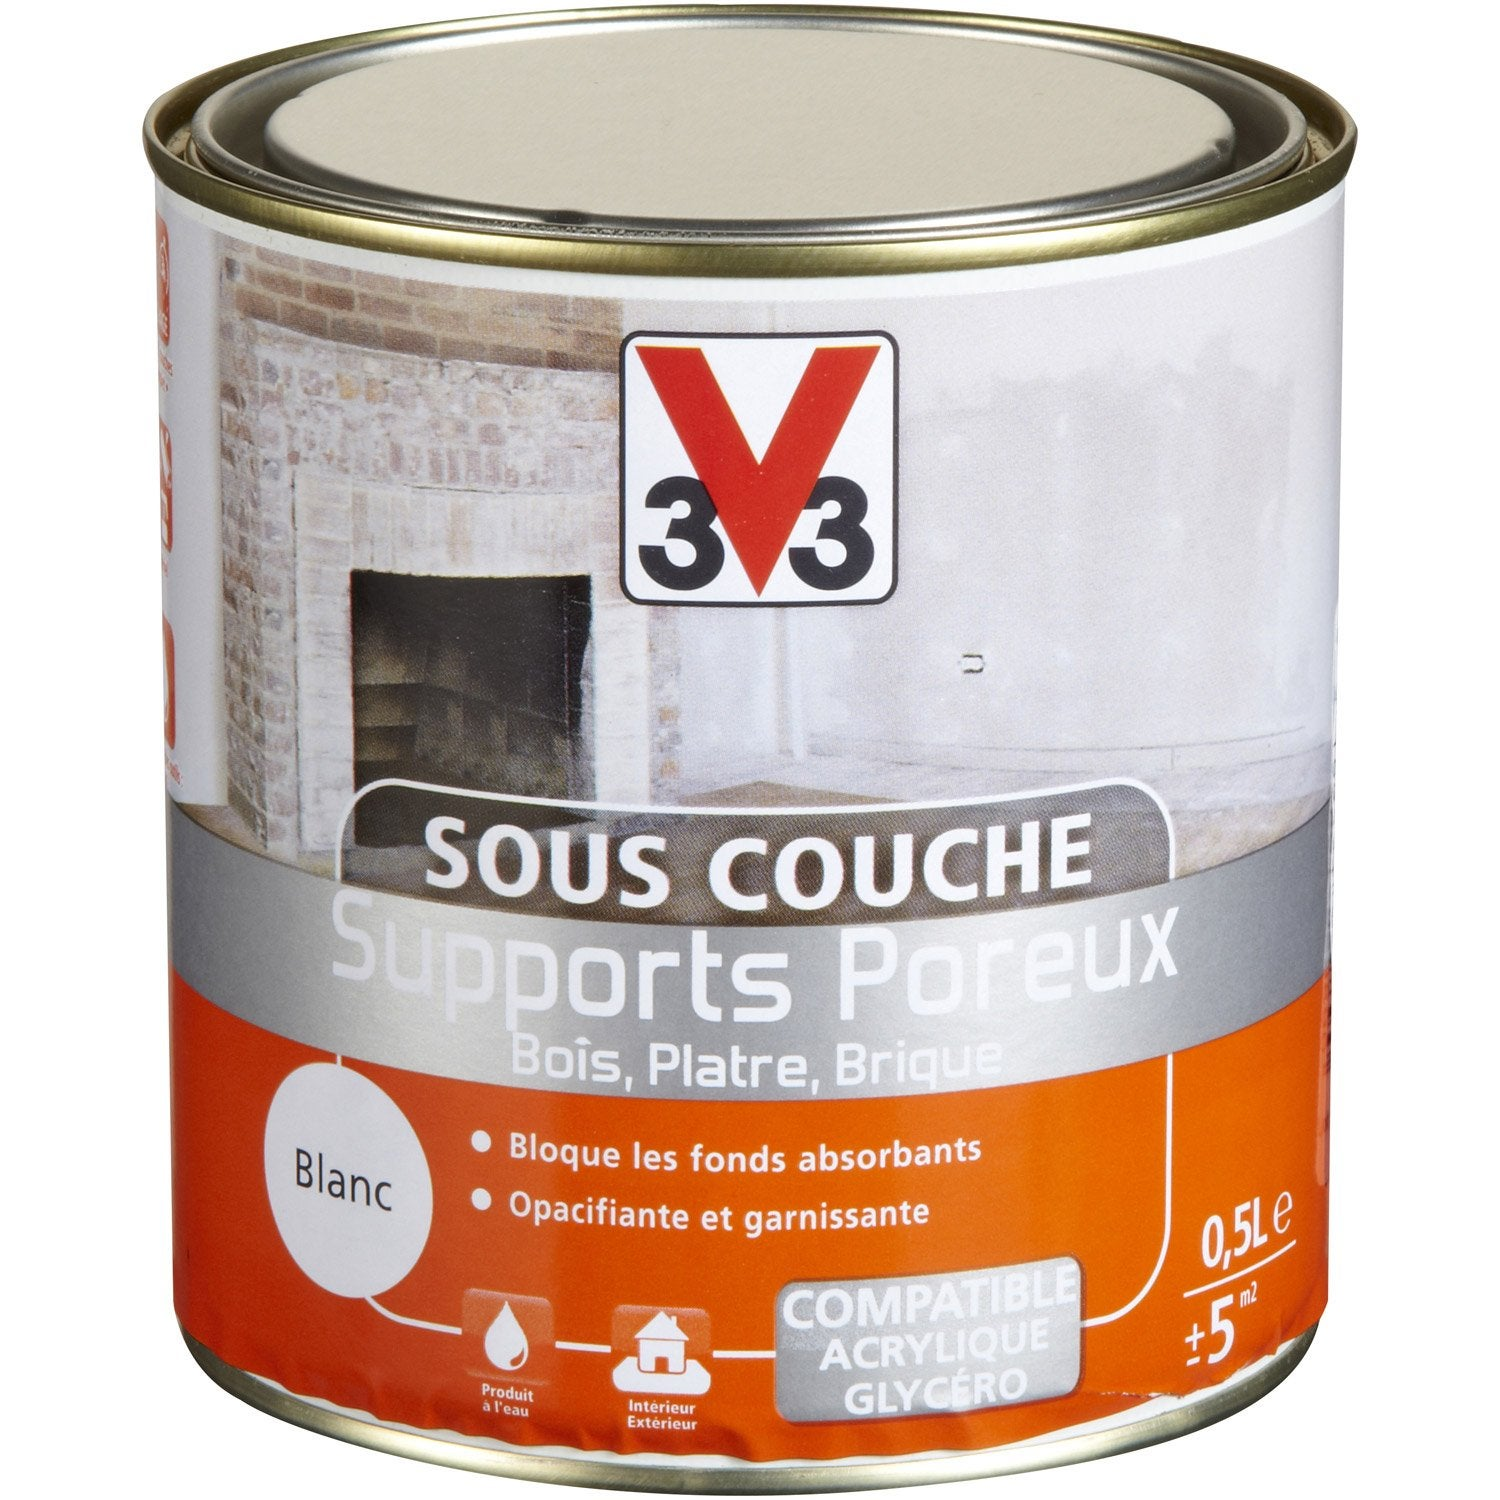 sous couche supports poreux v33 0 5 l leroy merlin. Black Bedroom Furniture Sets. Home Design Ideas